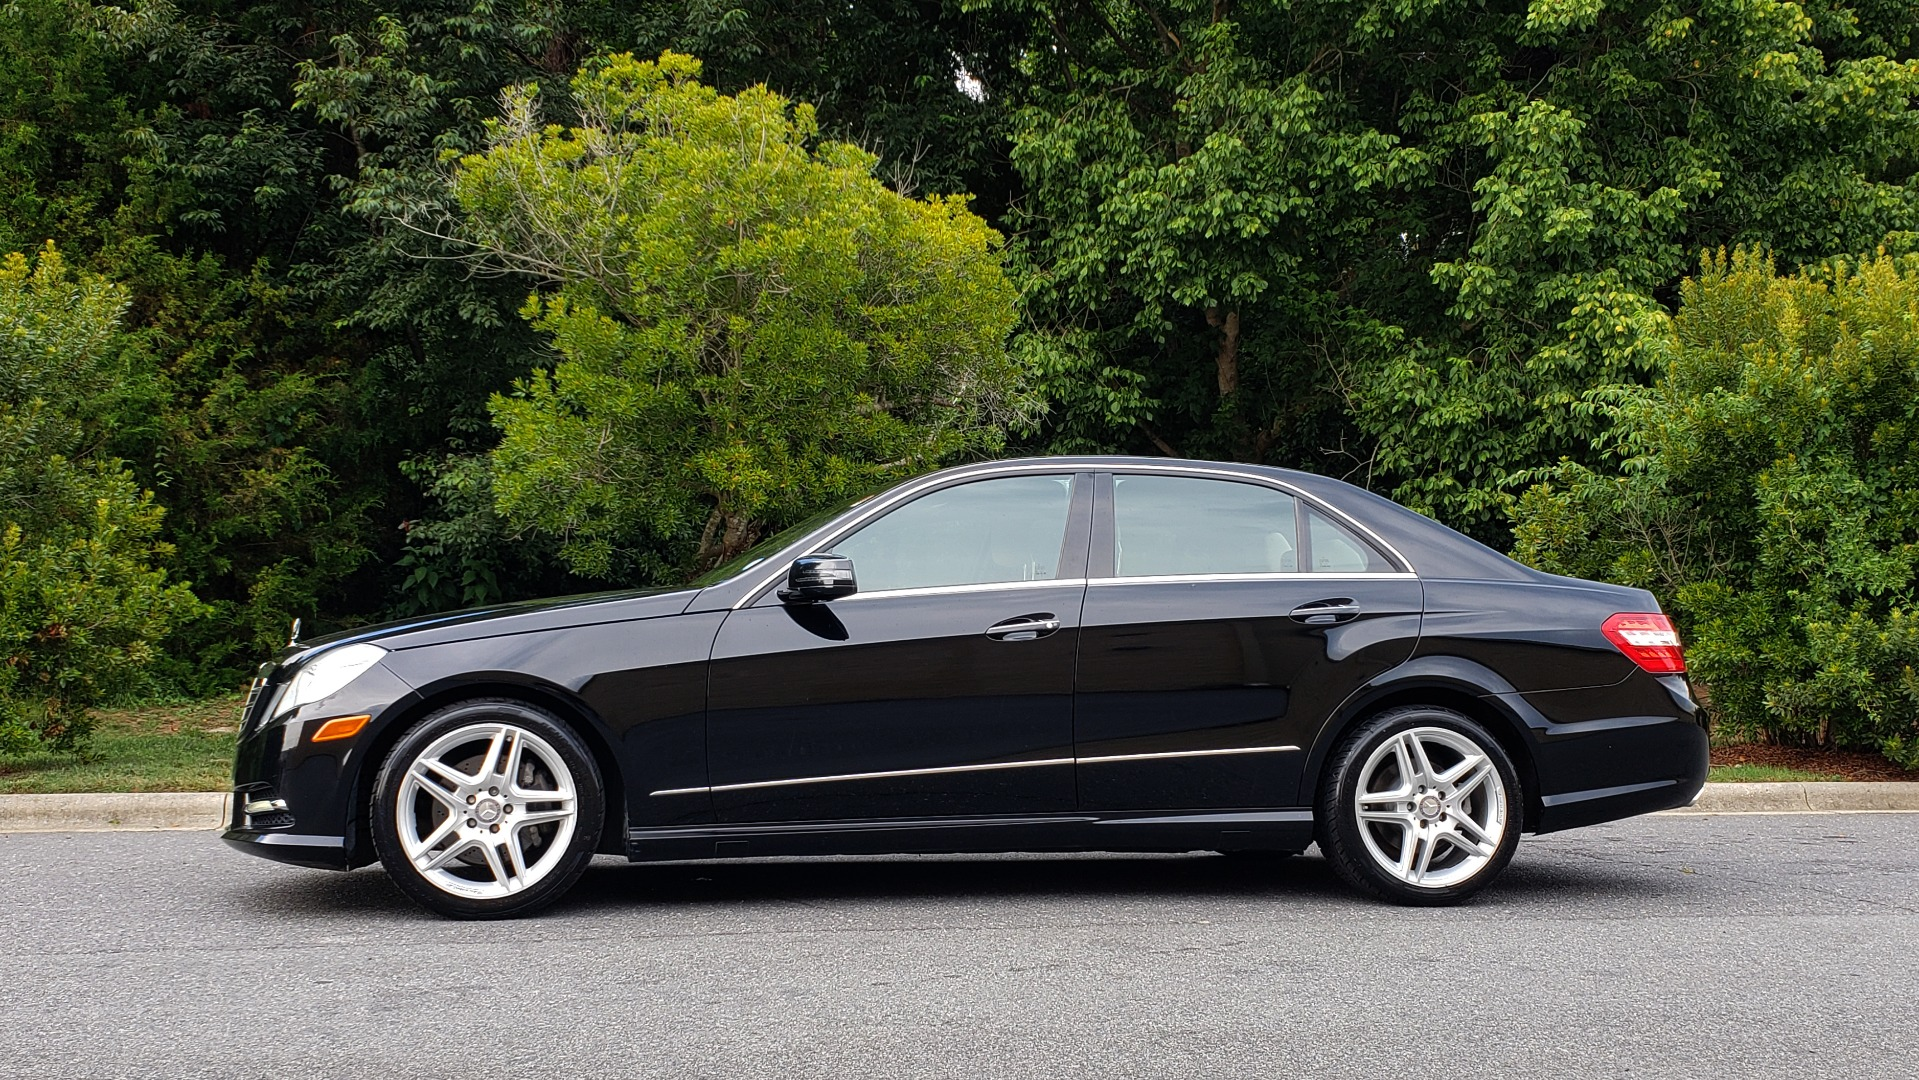 Used 2013 Mercedes-Benz E-CLASS E 350 SPORT / PREM PKG / NAV / SUNROOF / LANE TRACKING / BSA for sale $17,995 at Formula Imports in Charlotte NC 28227 2